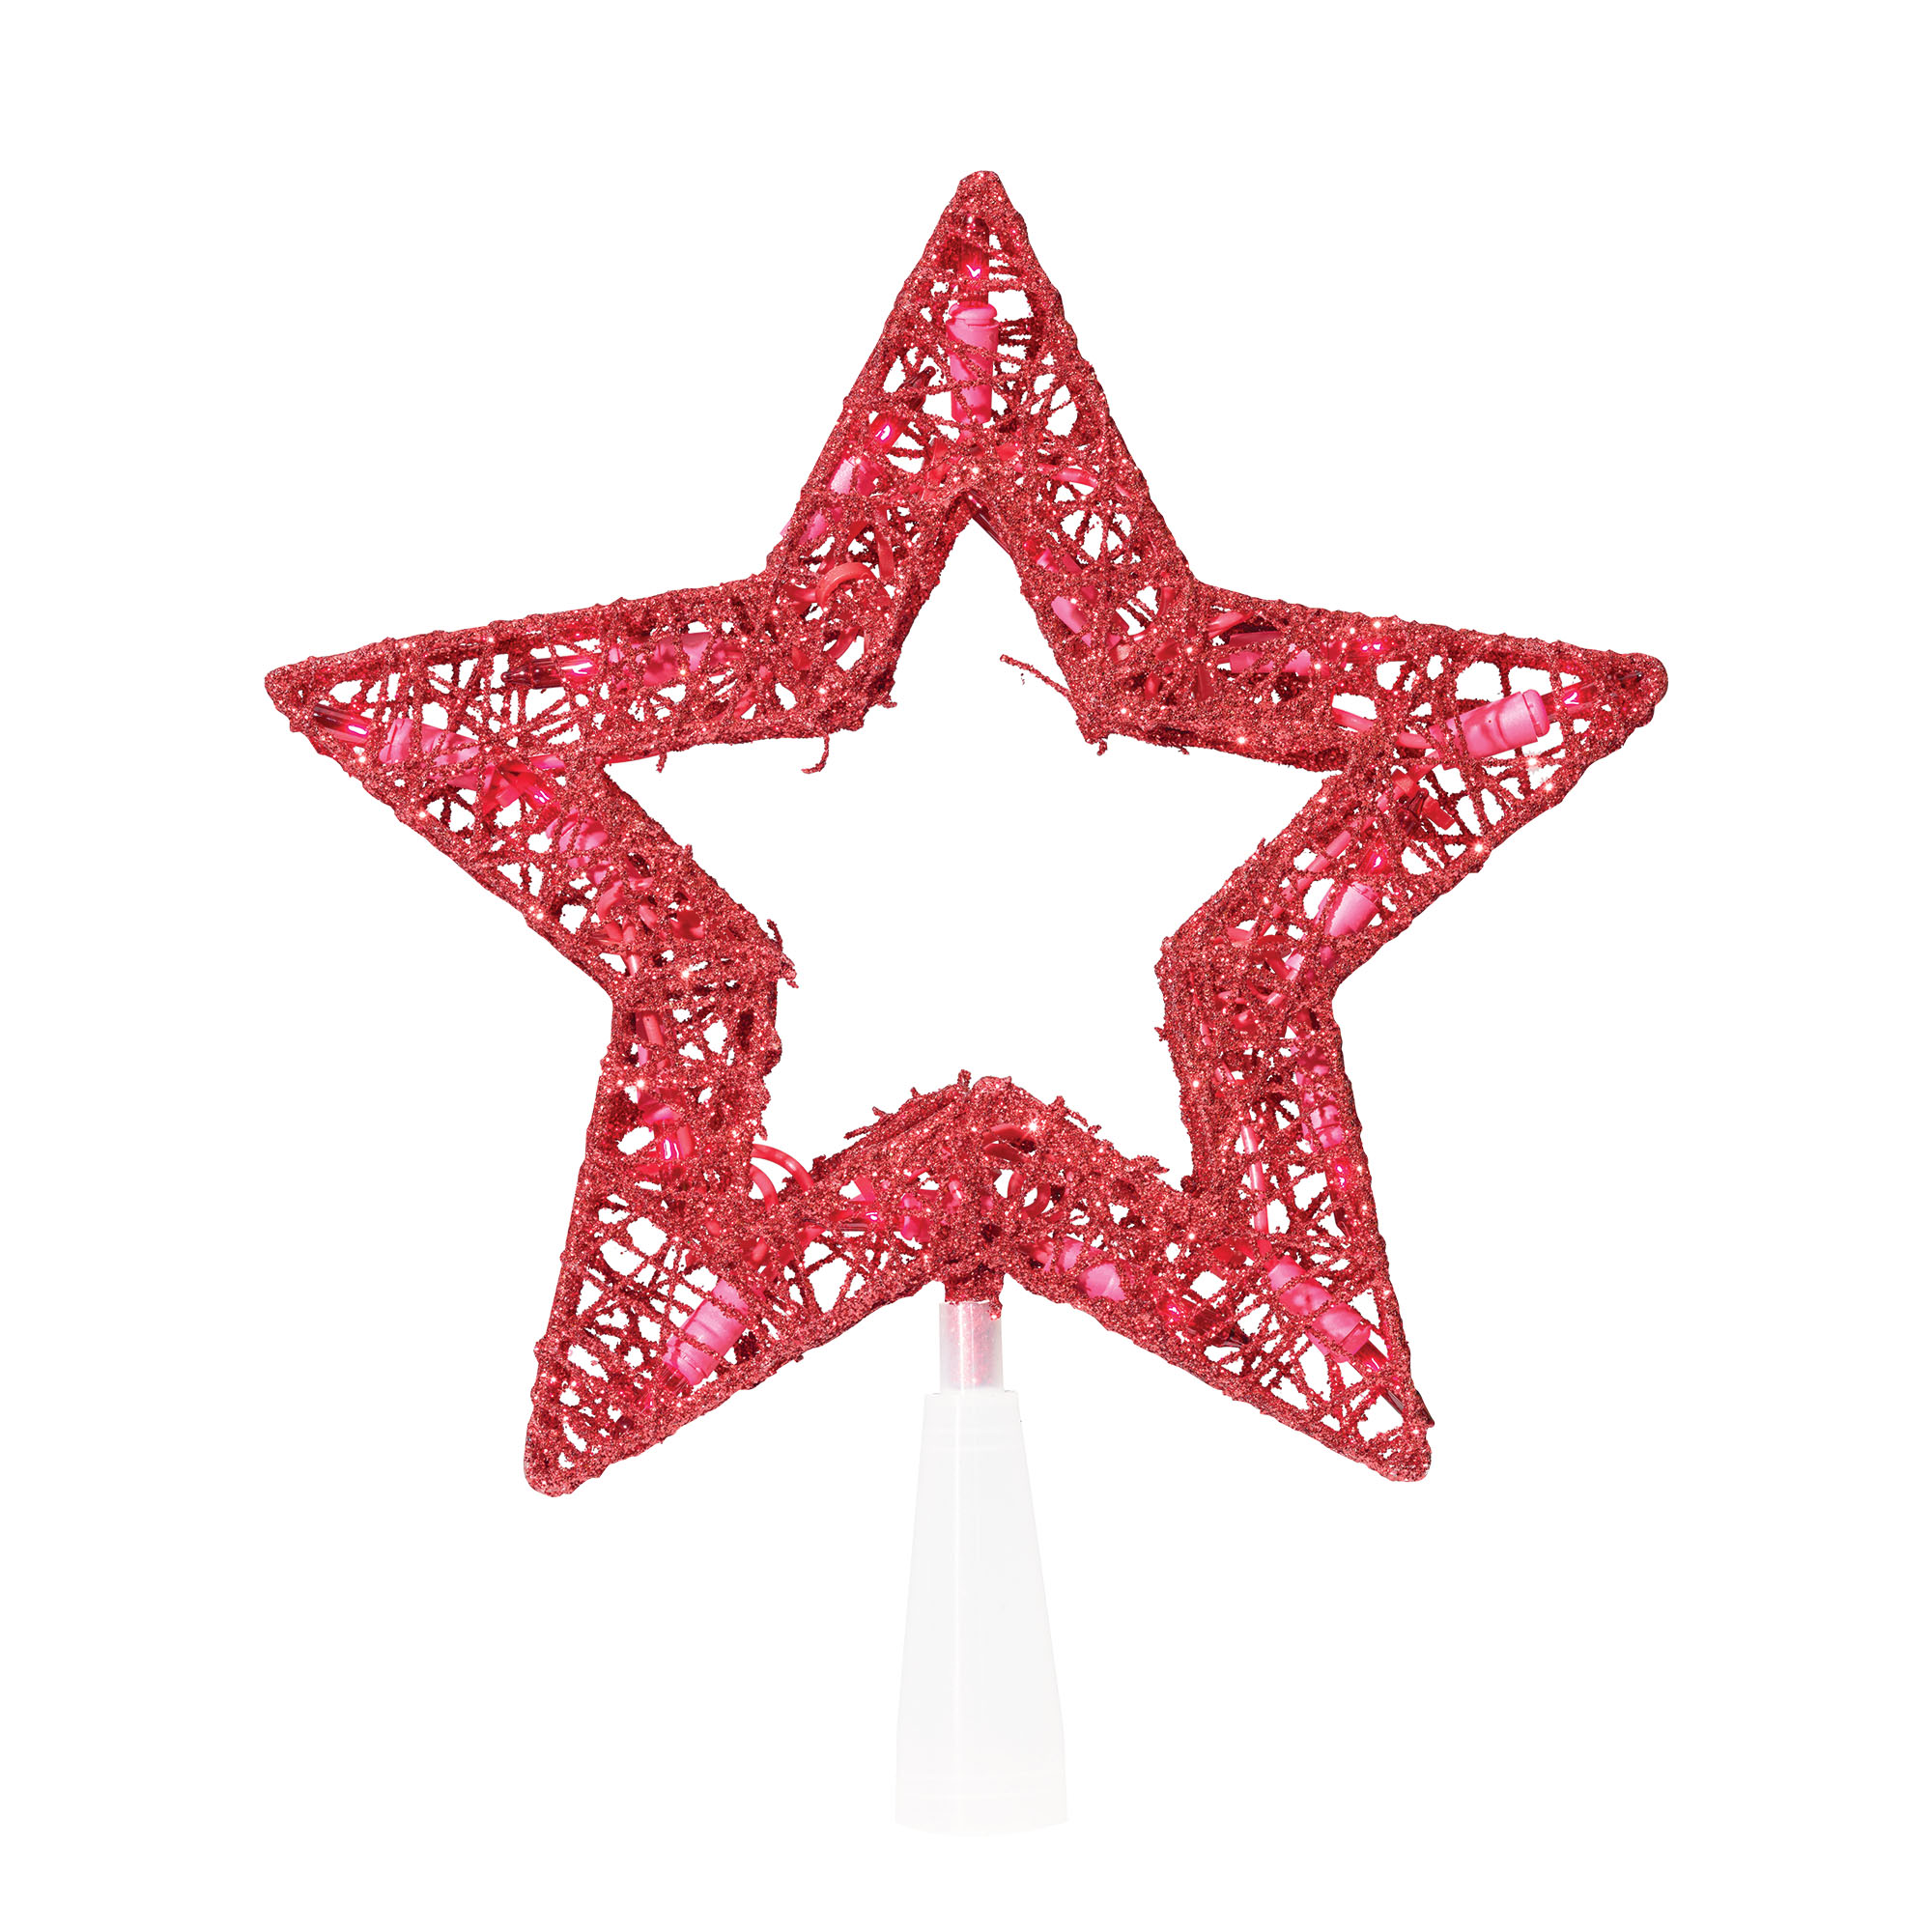 "Holiday Time Christmas 9"" 15 UL Glittering Thread Red Star Tree Topper with Red Bulbs"